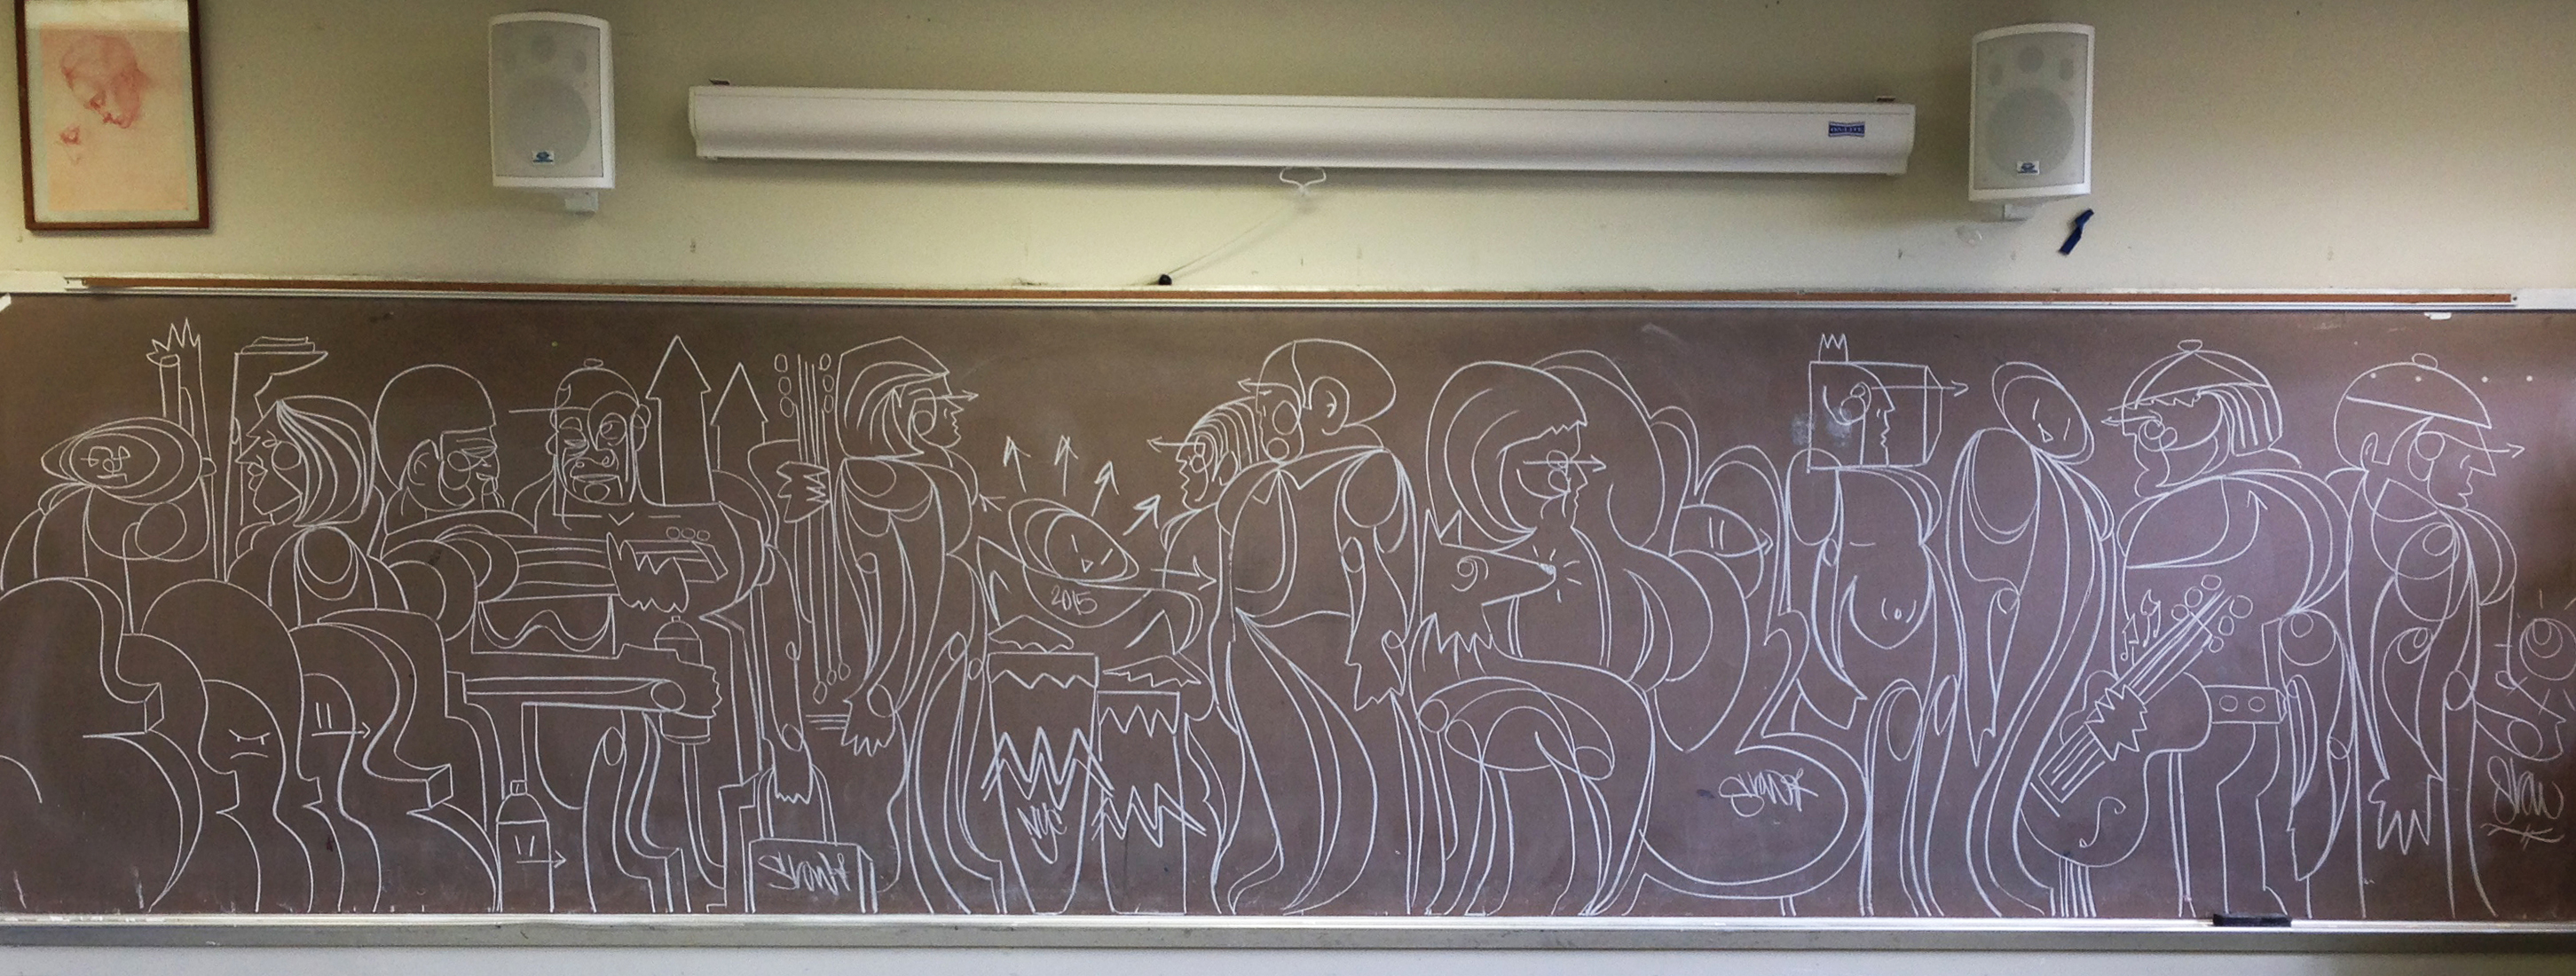 ChalkBoard Bombing – The 2015 Update #graffiti #drawing